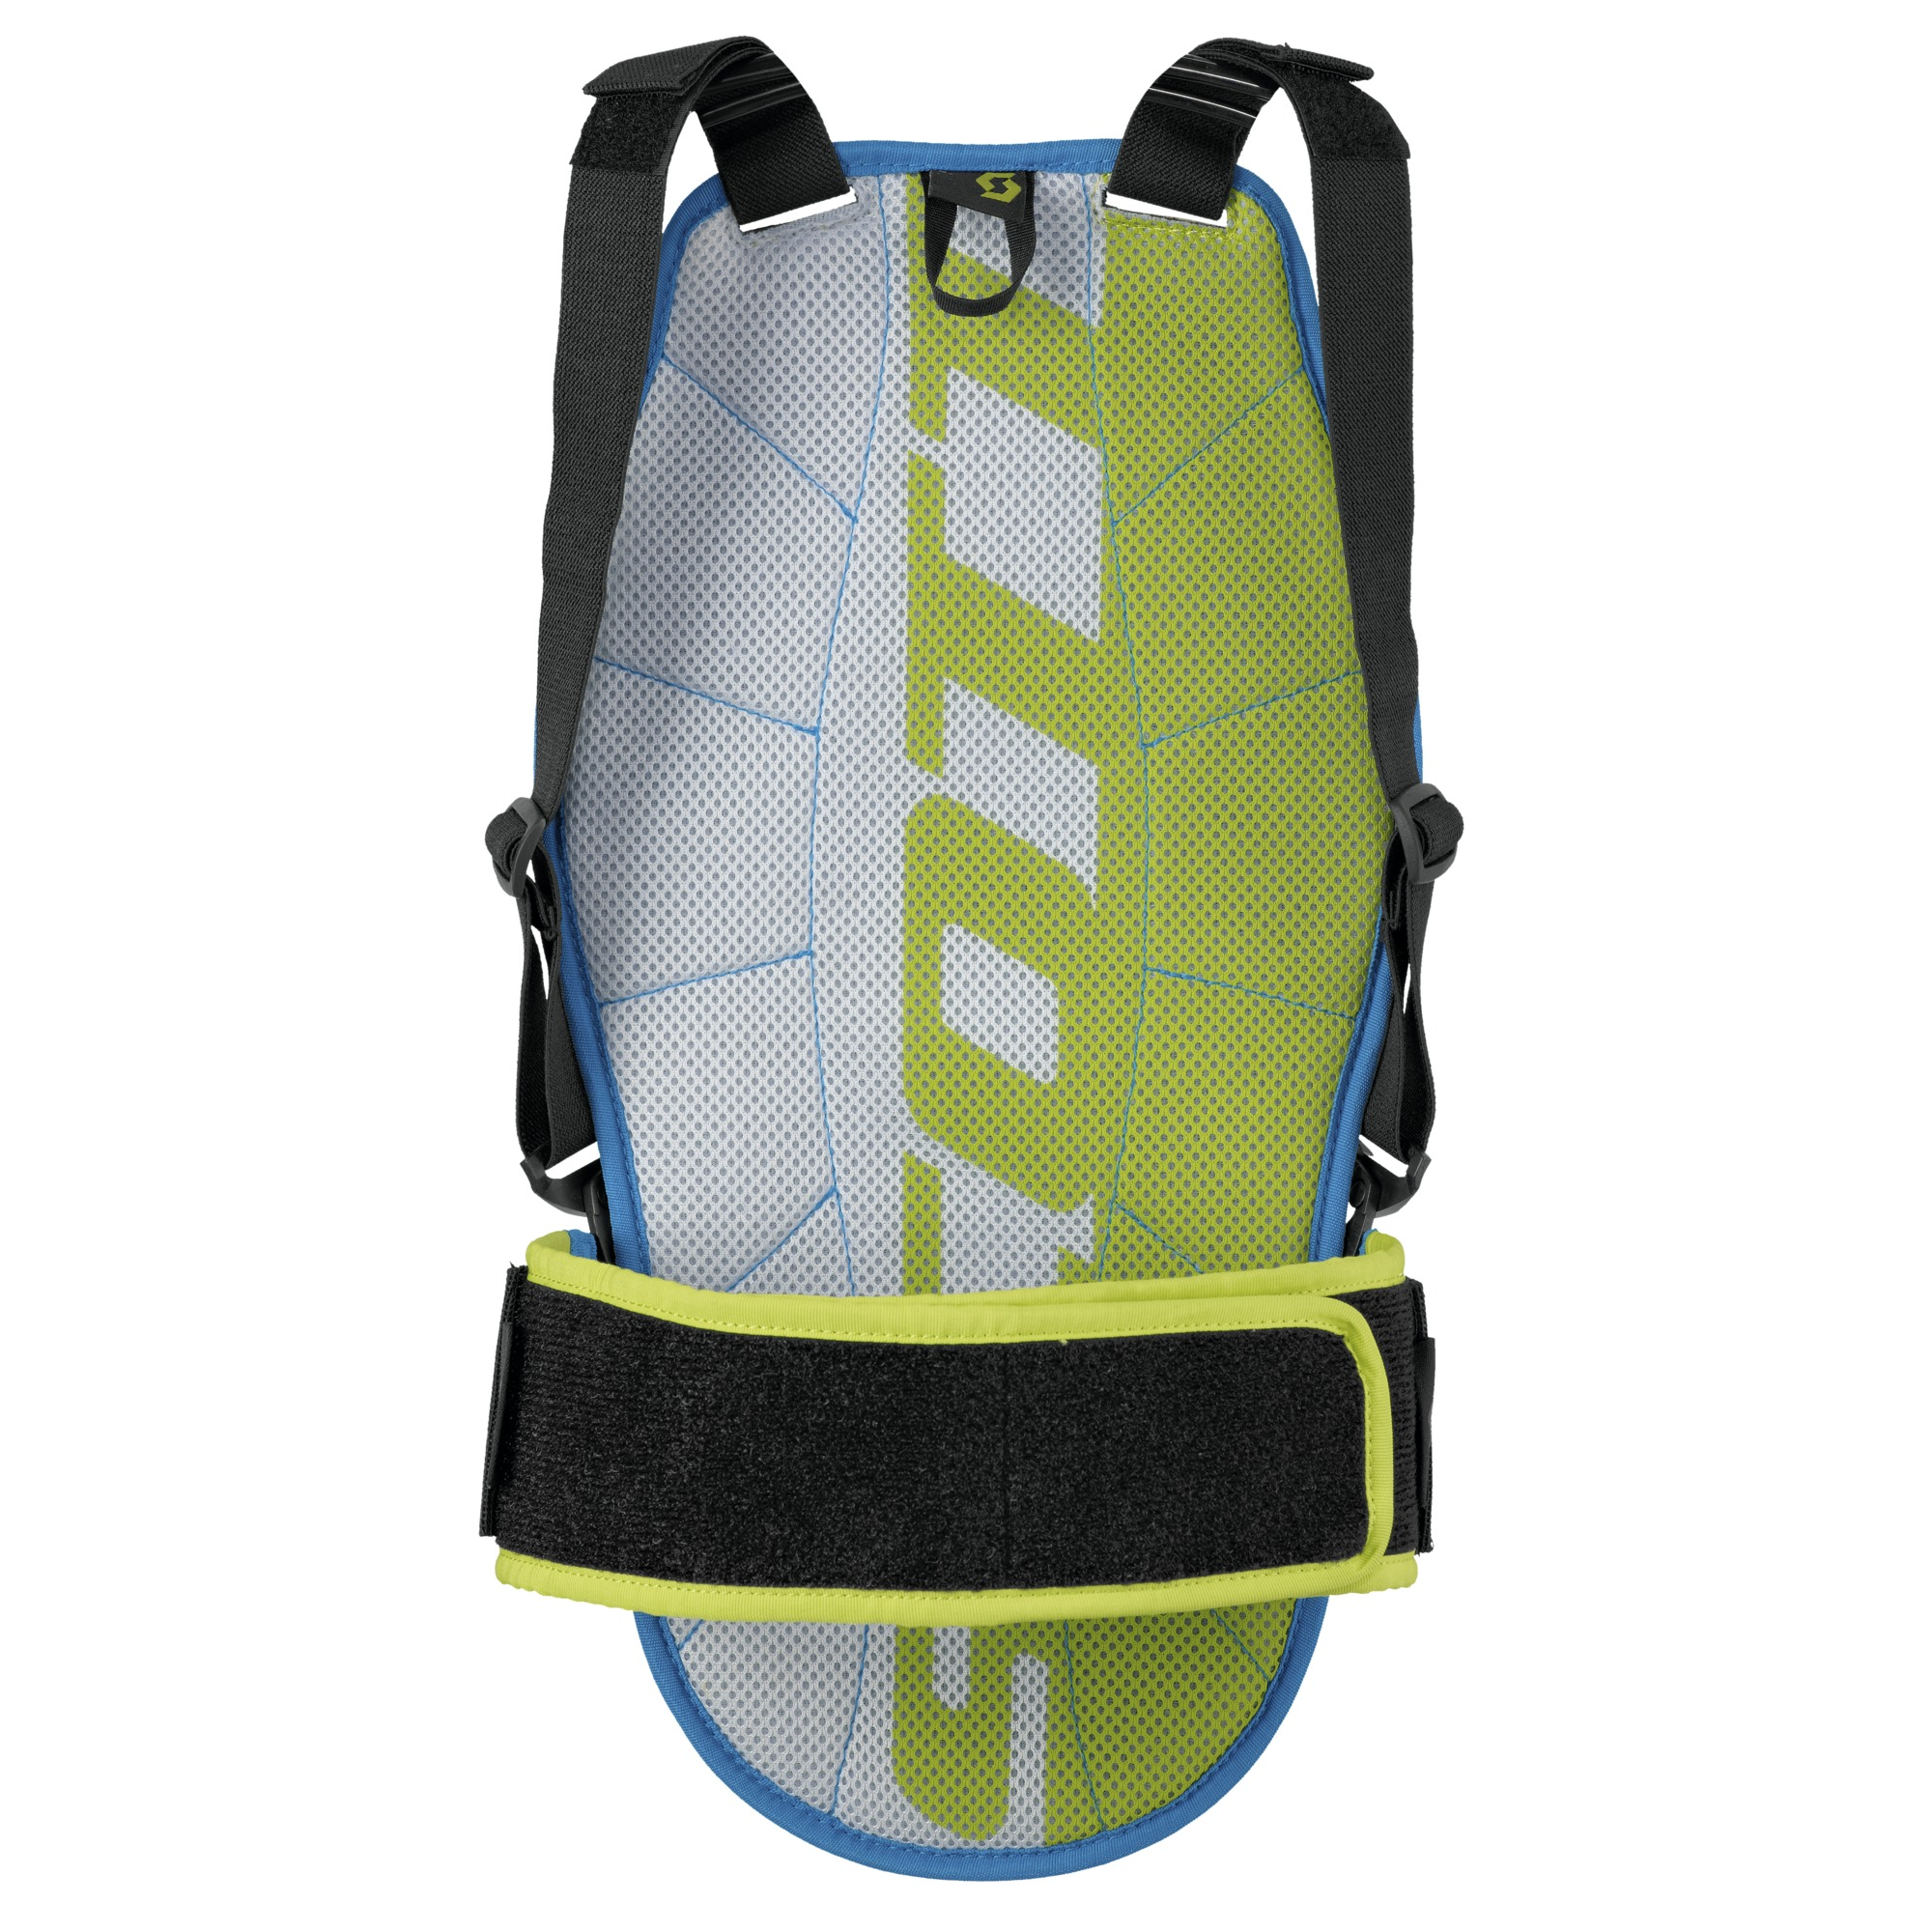 PROTEZIONE SCOTT JUNIOR X-ACTIVE BACK PROTECTOR 239662 FRONT.jpg